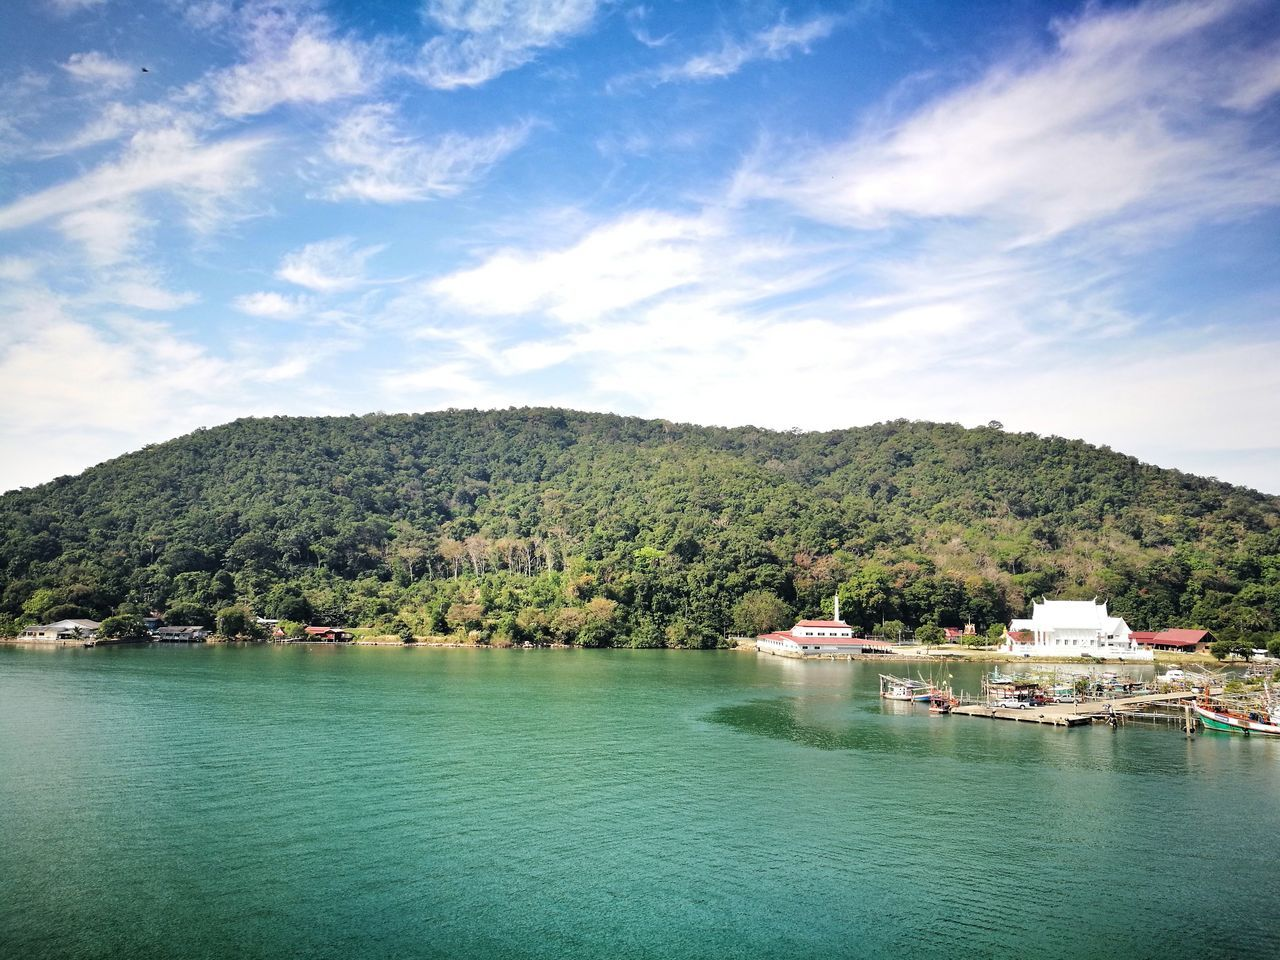 water, sky, tree, scenics, beauty in nature, nature, nautical vessel, mountain, tranquility, tranquil scene, waterfront, cloud - sky, day, outdoors, lake, no people, moored, architecture